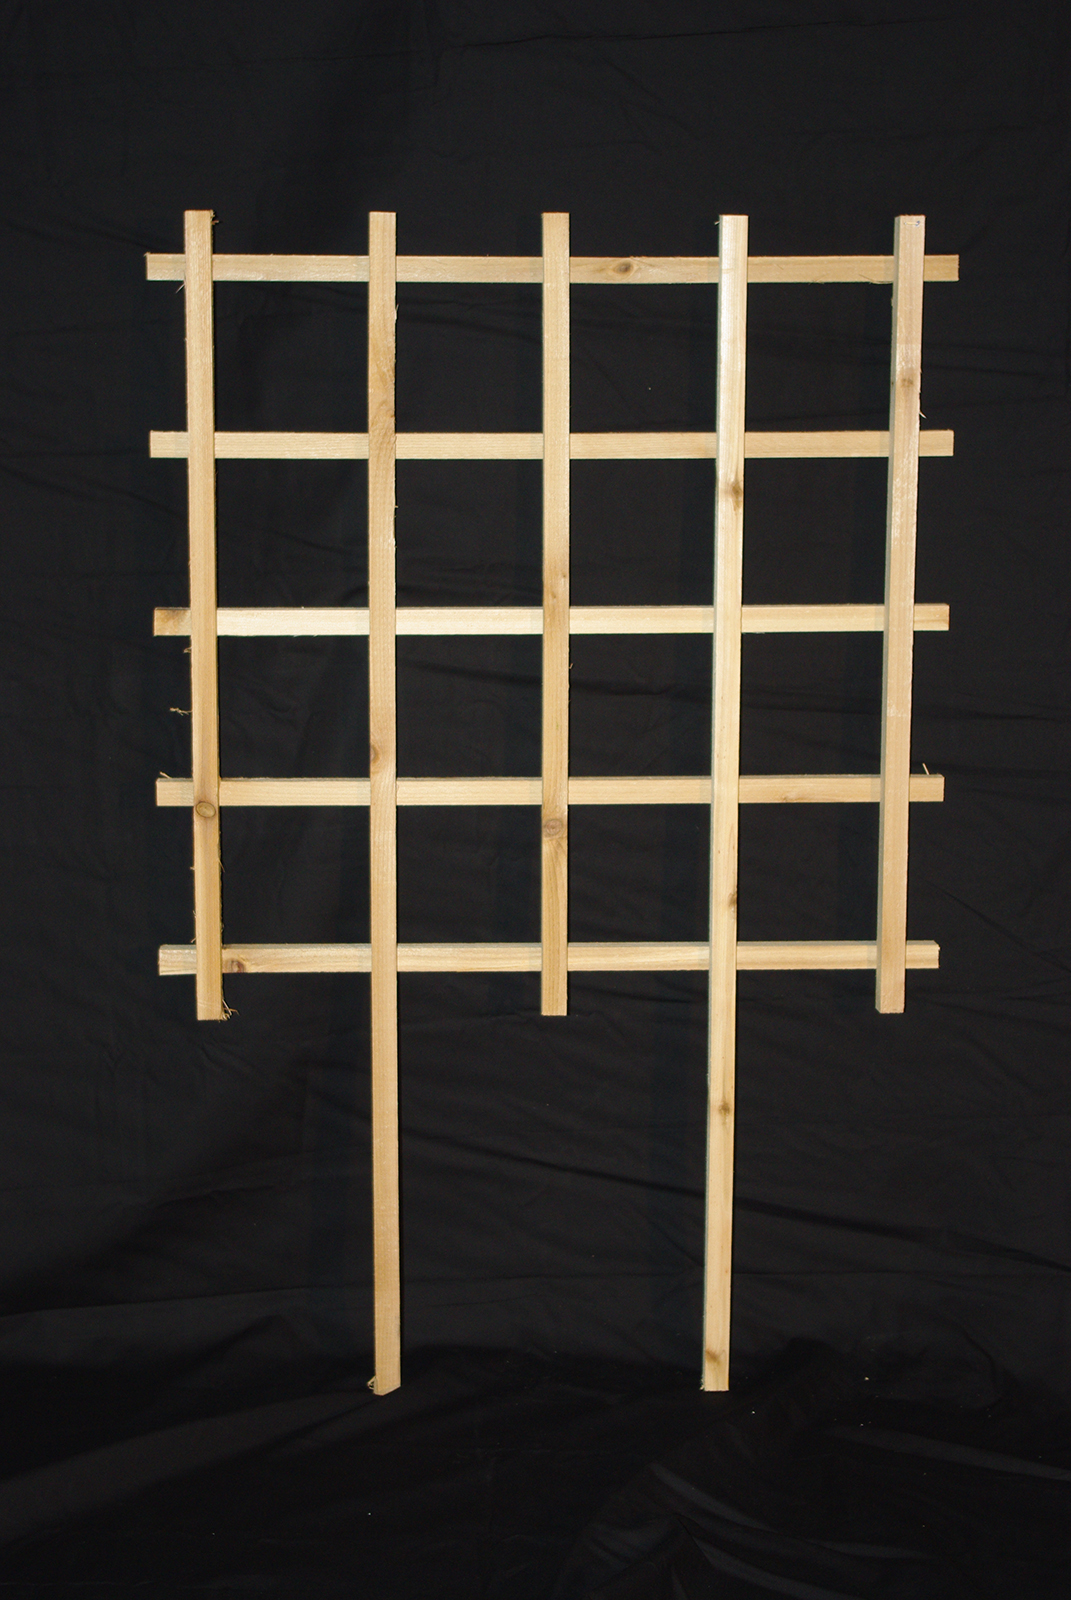 2'x2' Trellis with Legs for Mounting in the Ground